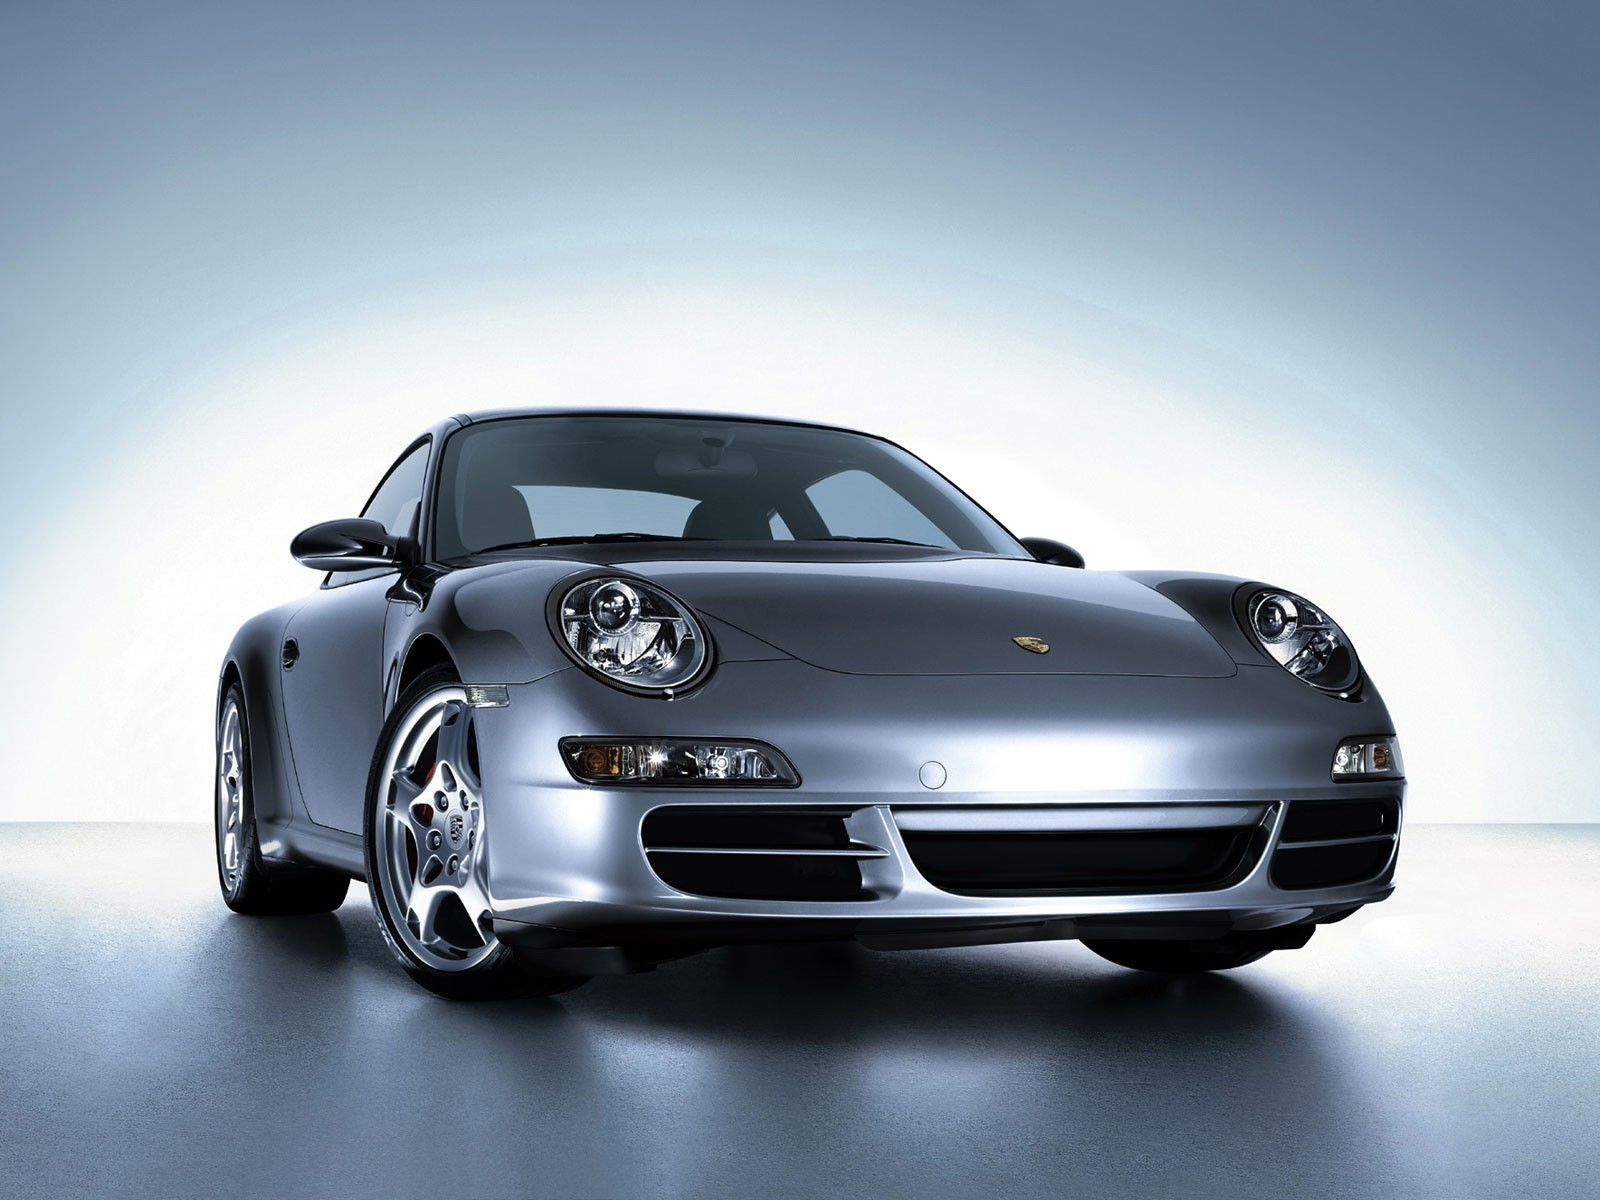 2005 porsche 911 carrera 997 top speed. Black Bedroom Furniture Sets. Home Design Ideas